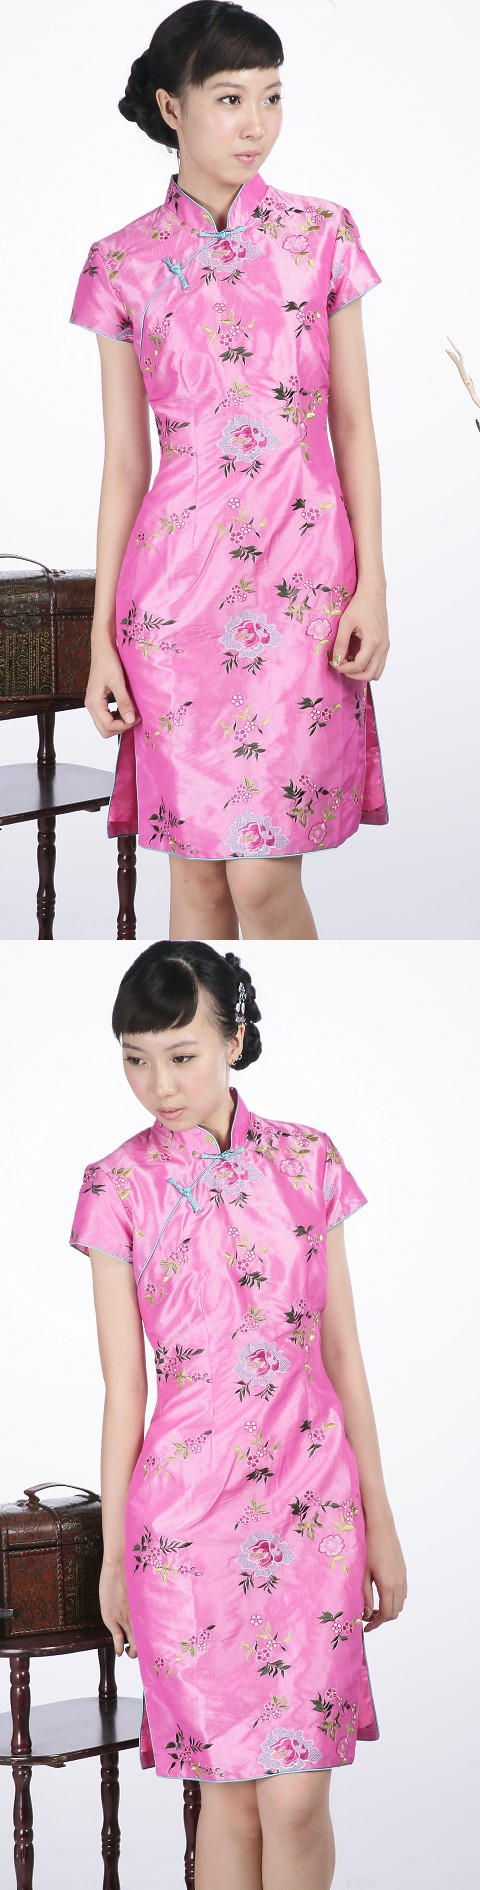 Short-sleeve Floral Embroidery Midi Cheongsam Dress (Pink)